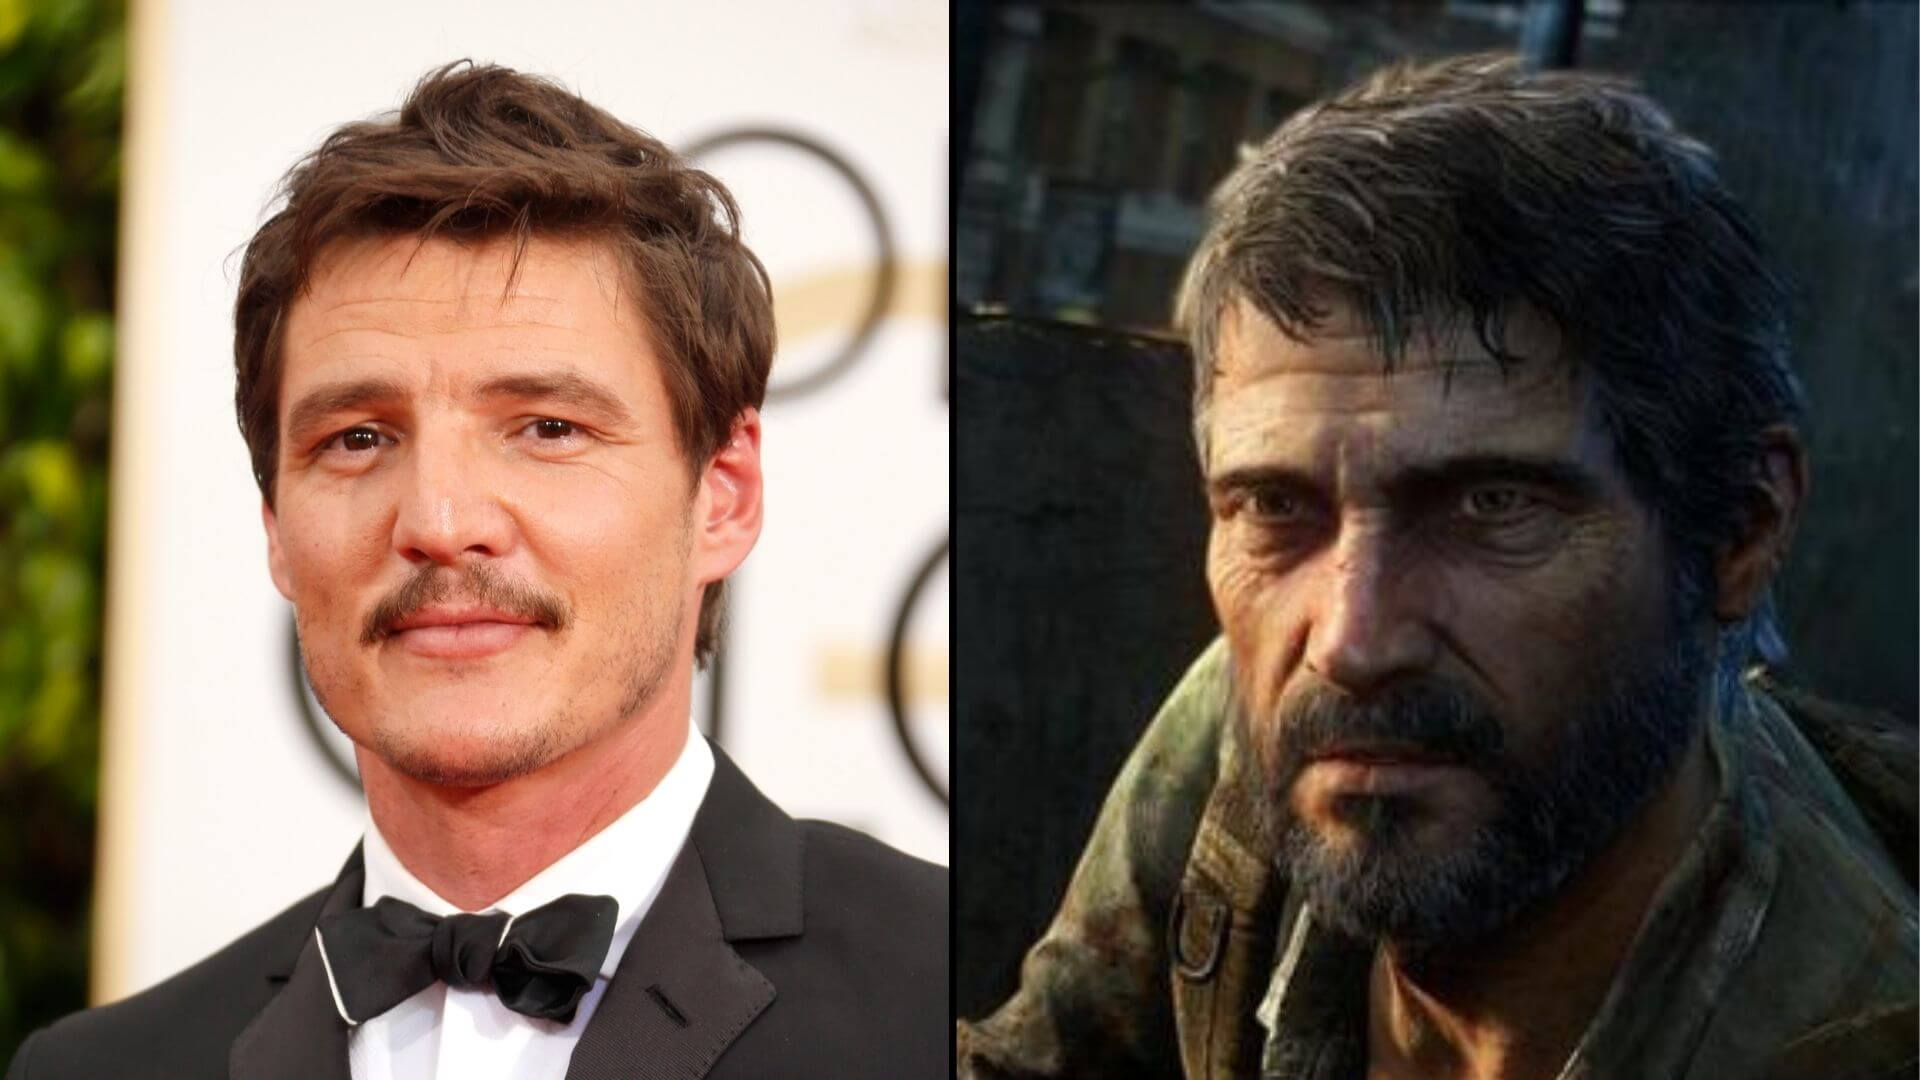 Pedro Pascal interpretará a Joel en la serie de The Last of Us de HBO